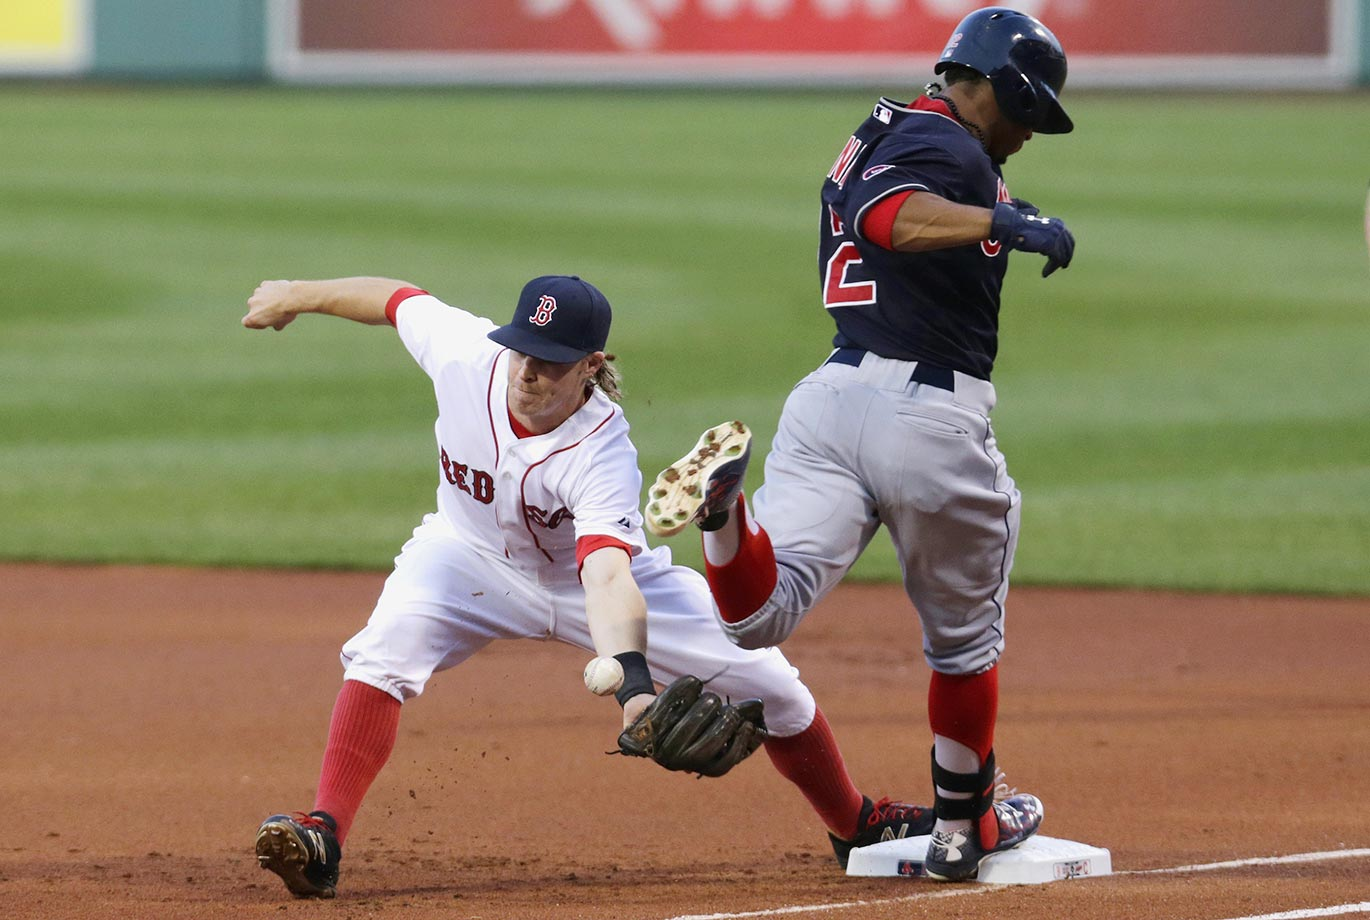 Boston Red Sox second baseman Brock Holt drops the ball for an error while covering first base on a grounder by Cleveland Indians Francisco Lindor.